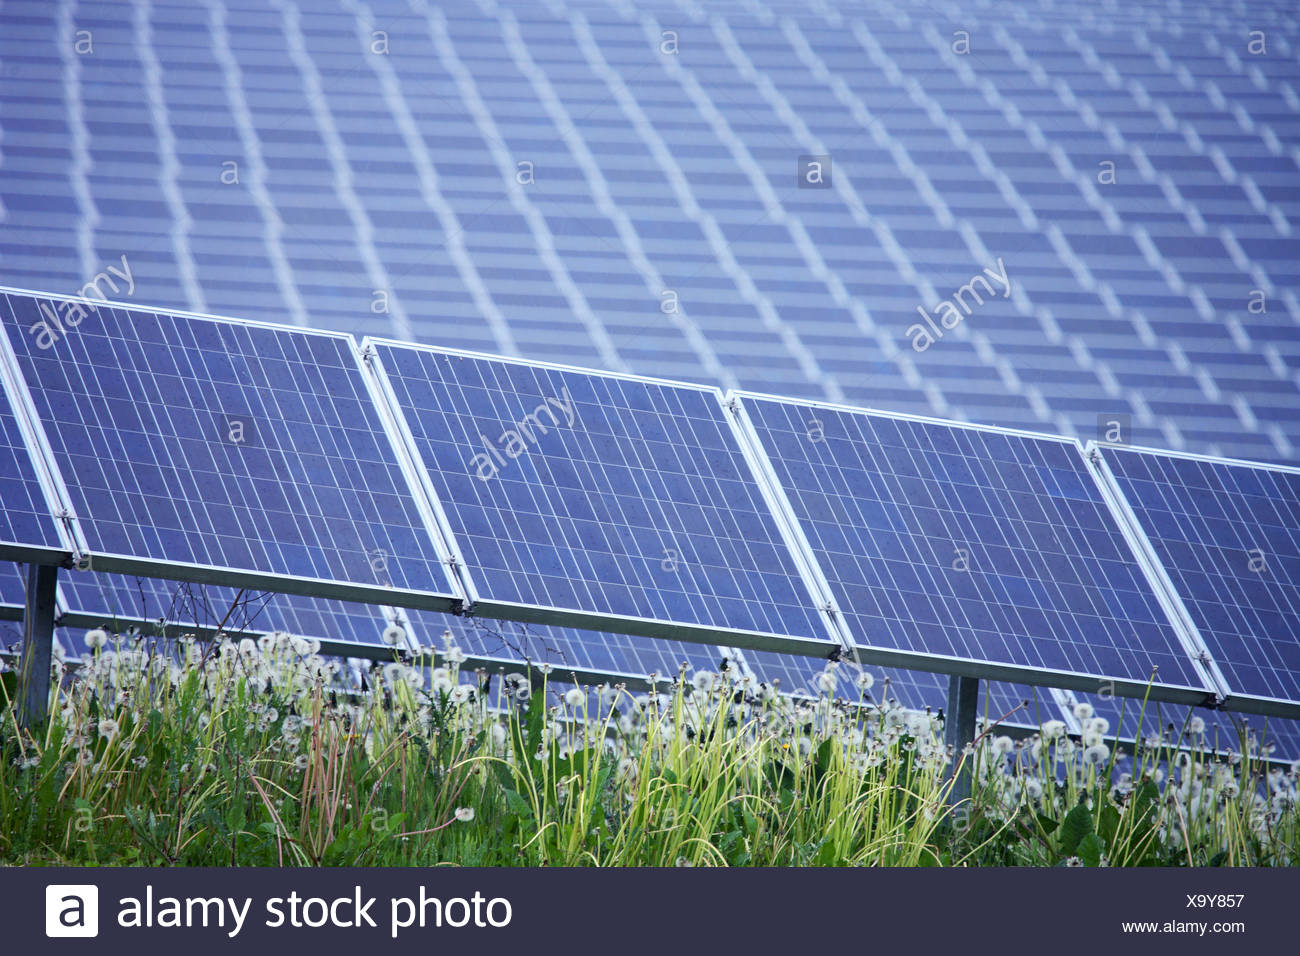 Solar panels in field - Stock Image